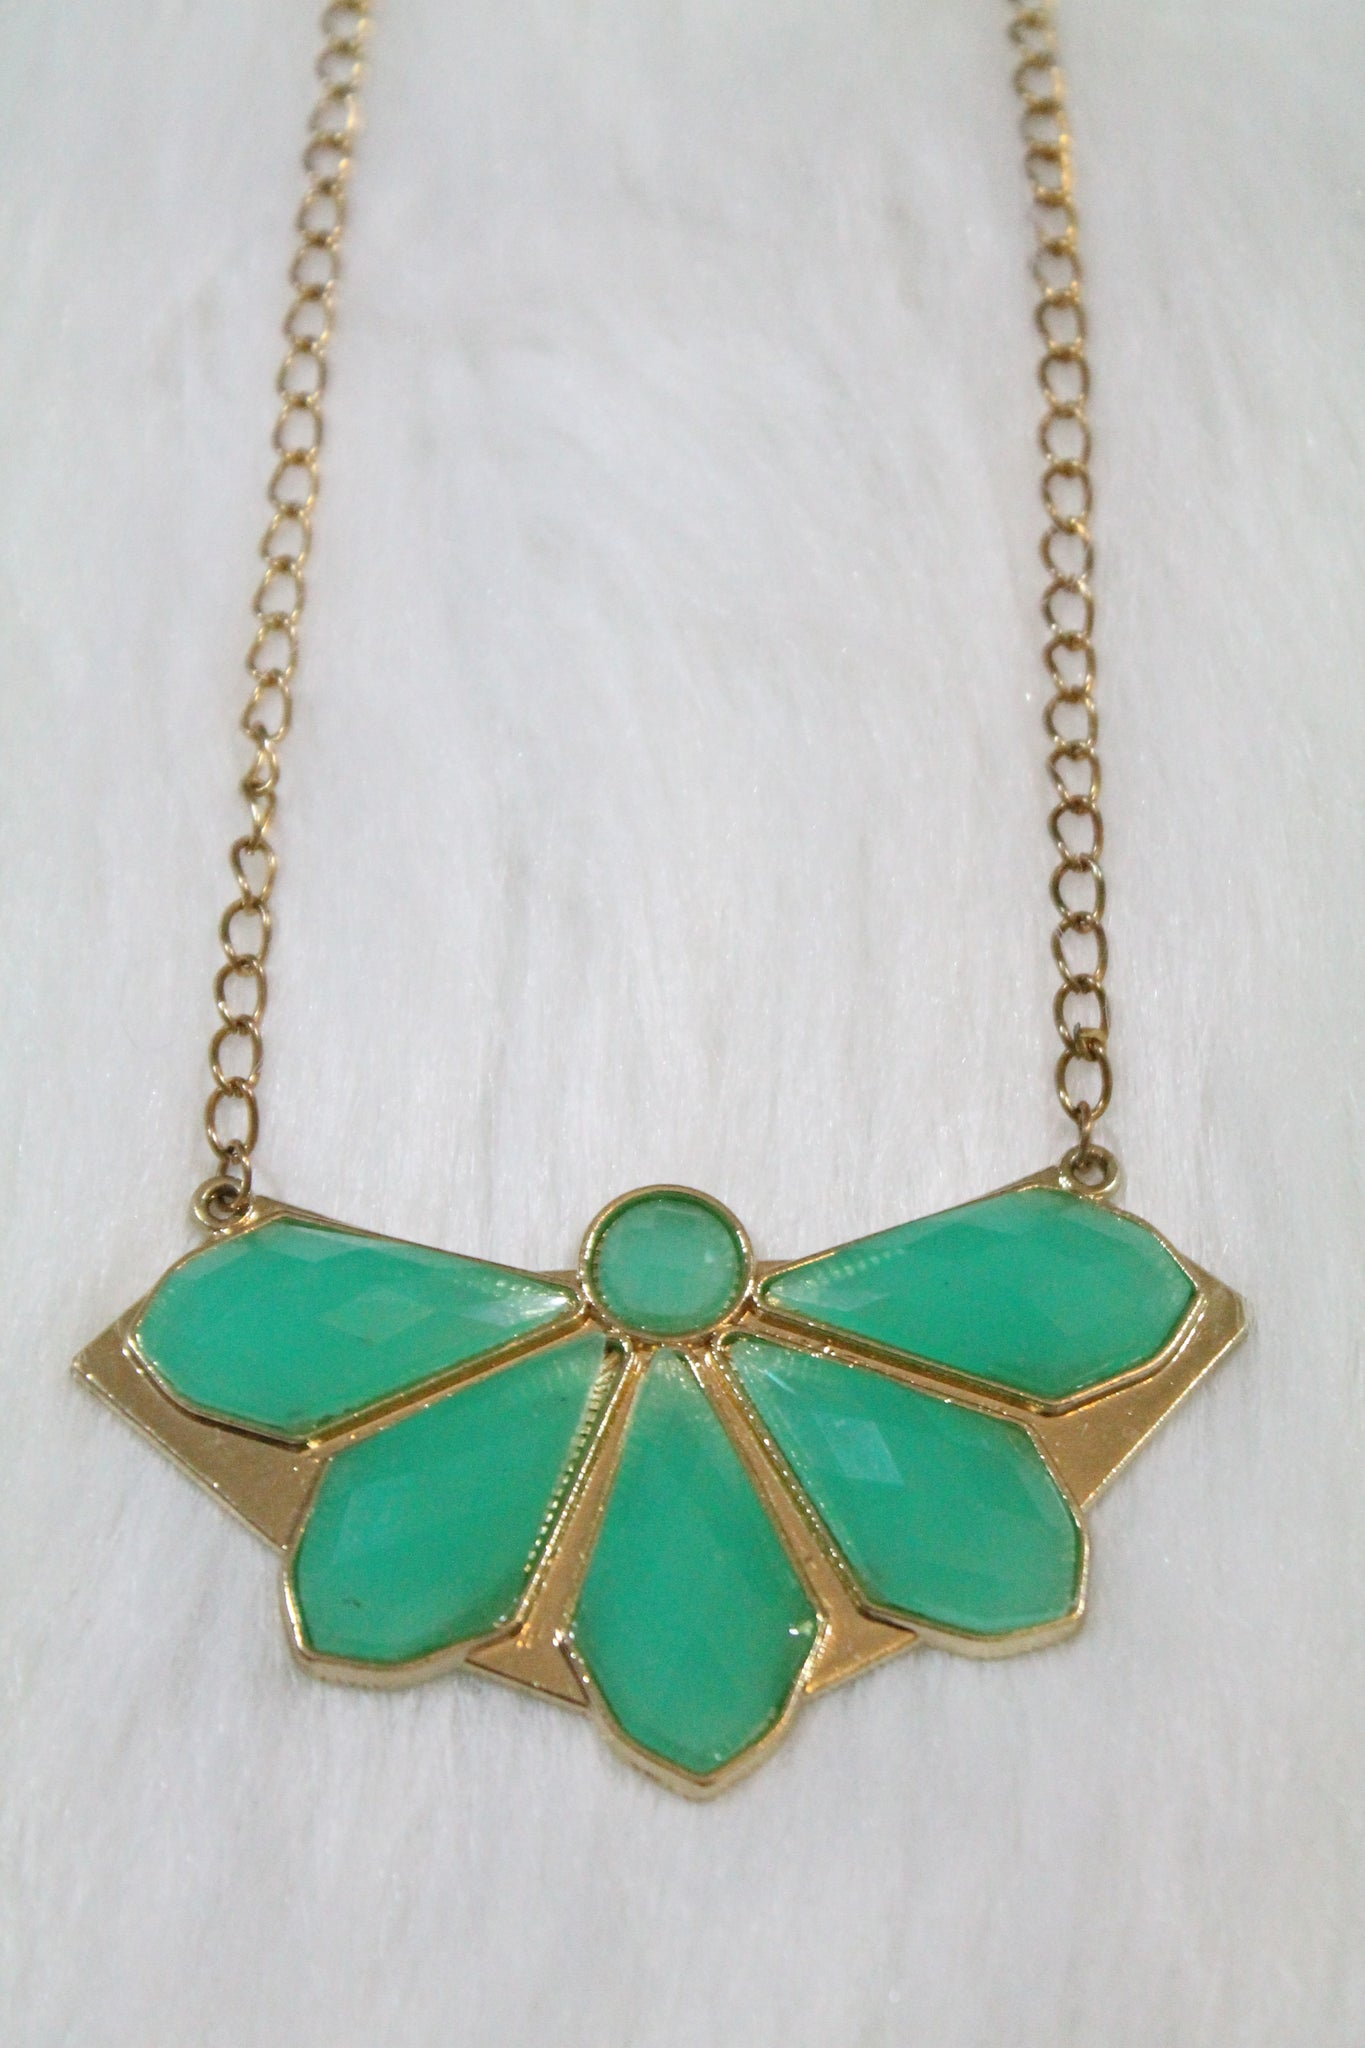 Design Gem Chain Necklace - Green